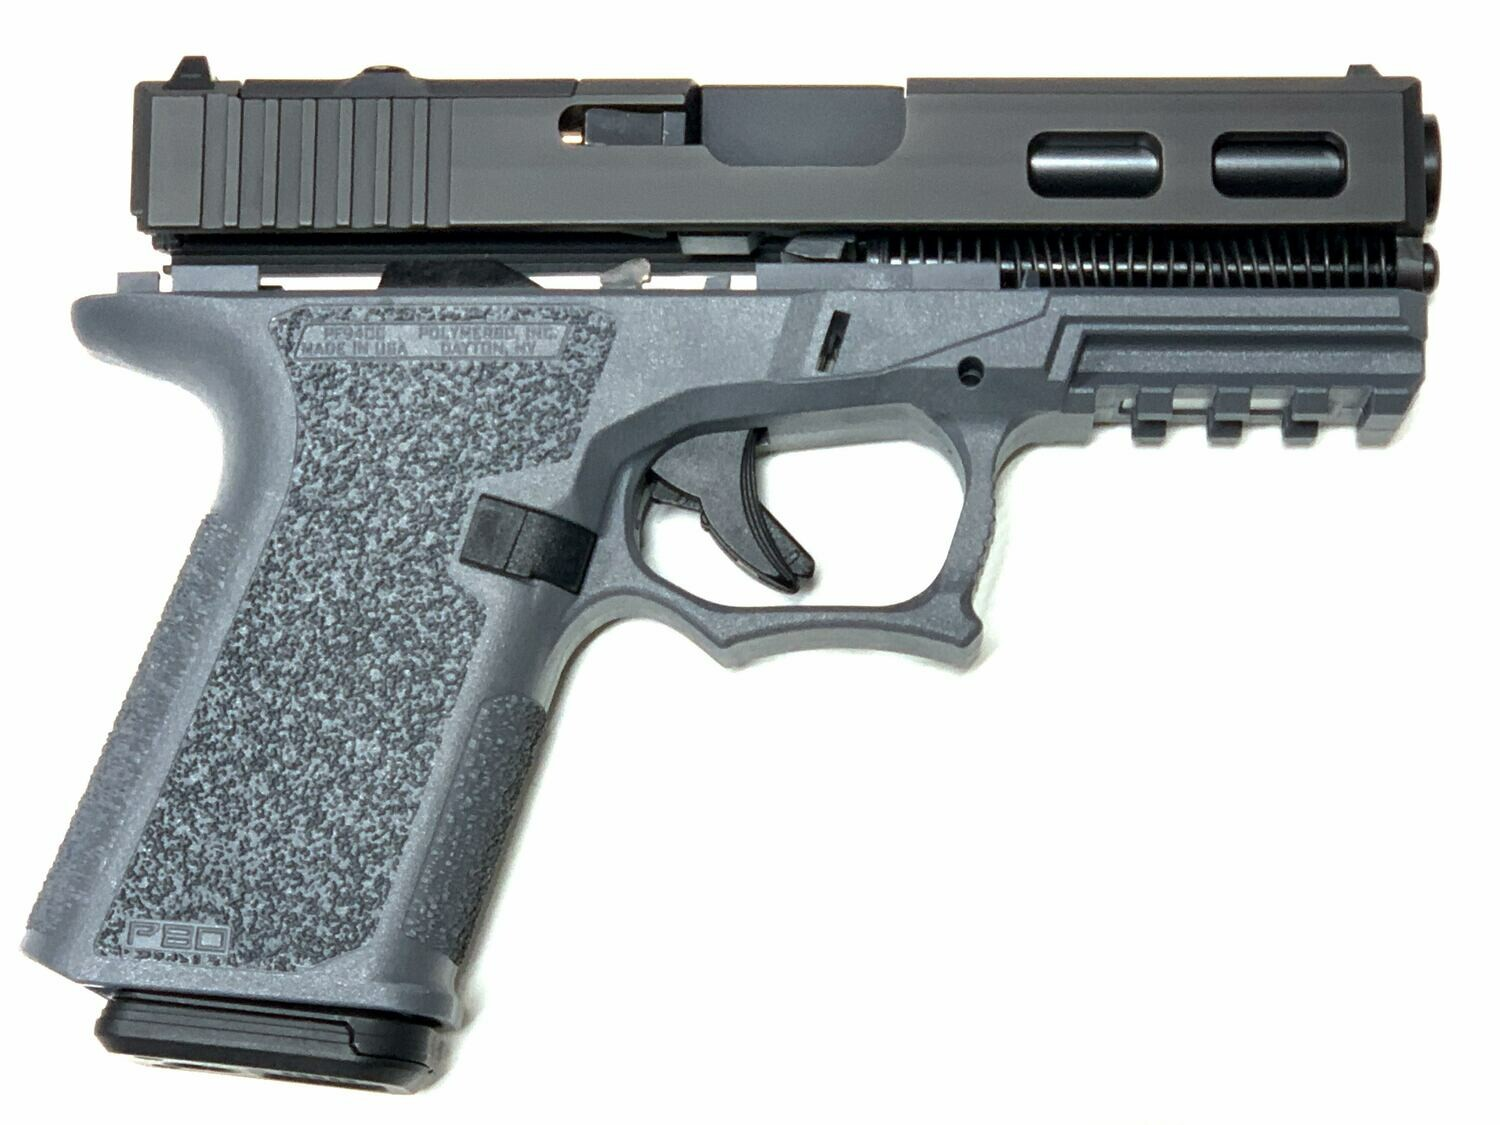 Patriot G19 RMR Windowed Slide 80% Pistol Build Kit - Polymer80 PF940C - BLACK / GRAY